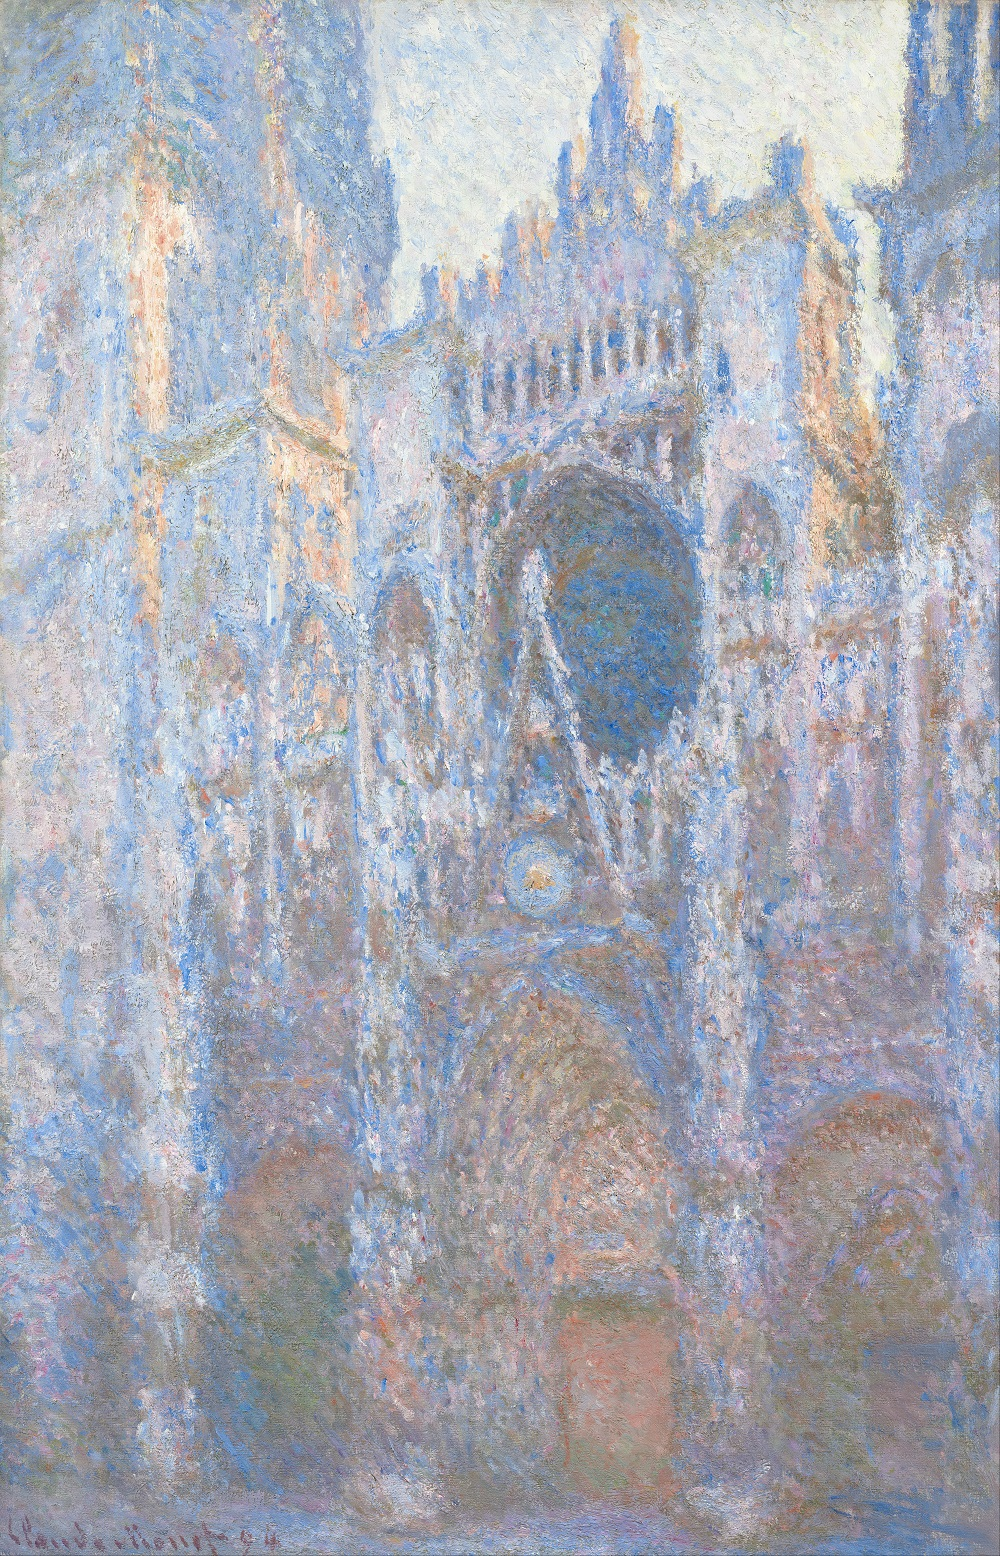 Claude Monet Rouen Cathedral, West Façade, 1894 National Gallery of Art, Washington D.C.